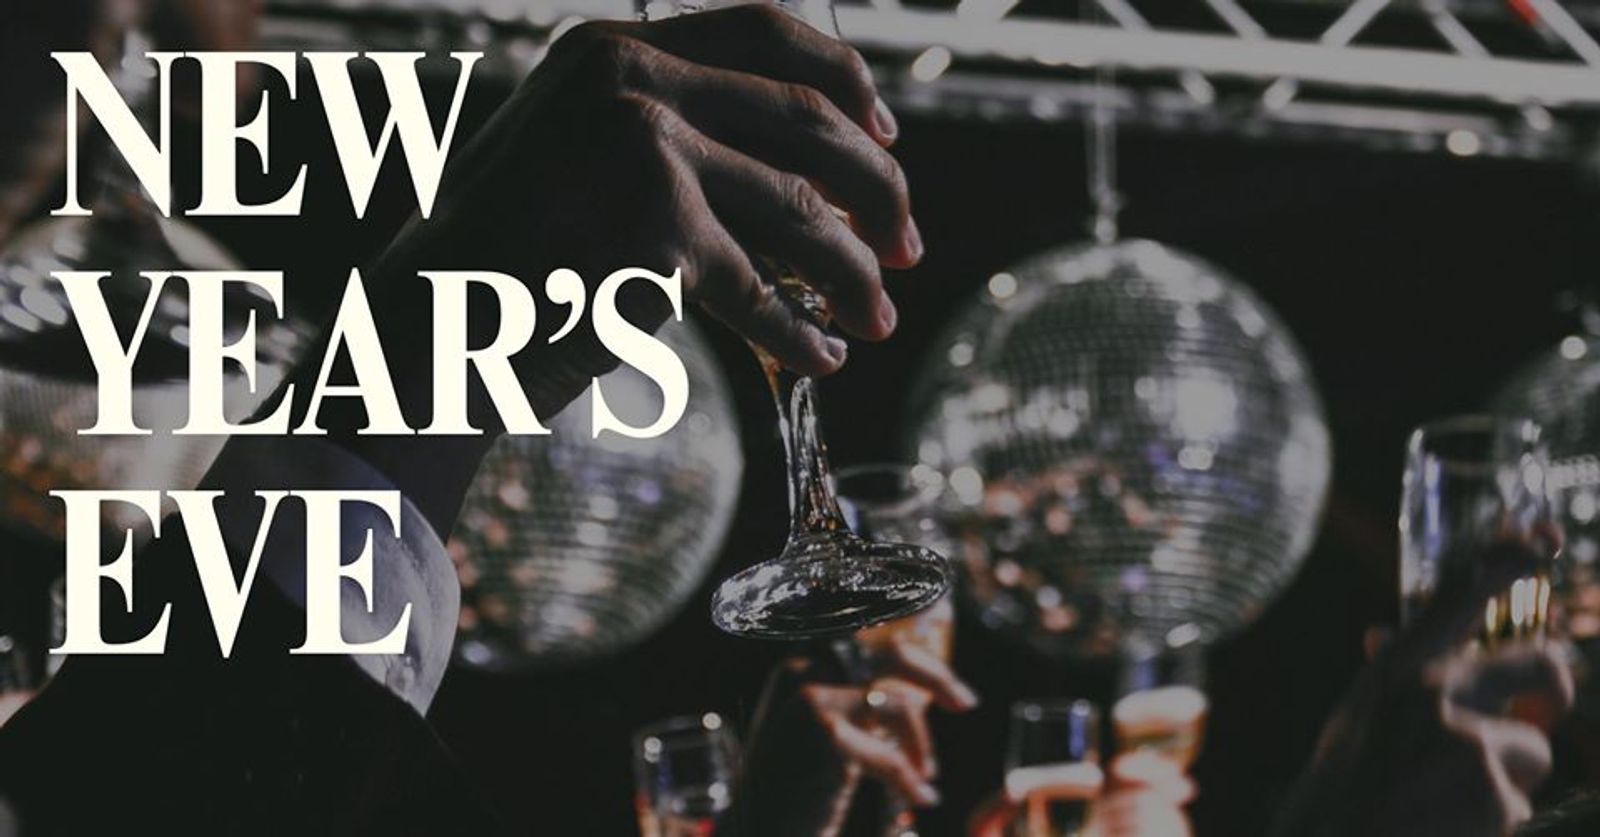 New Year's Eve - Silvester im Dom